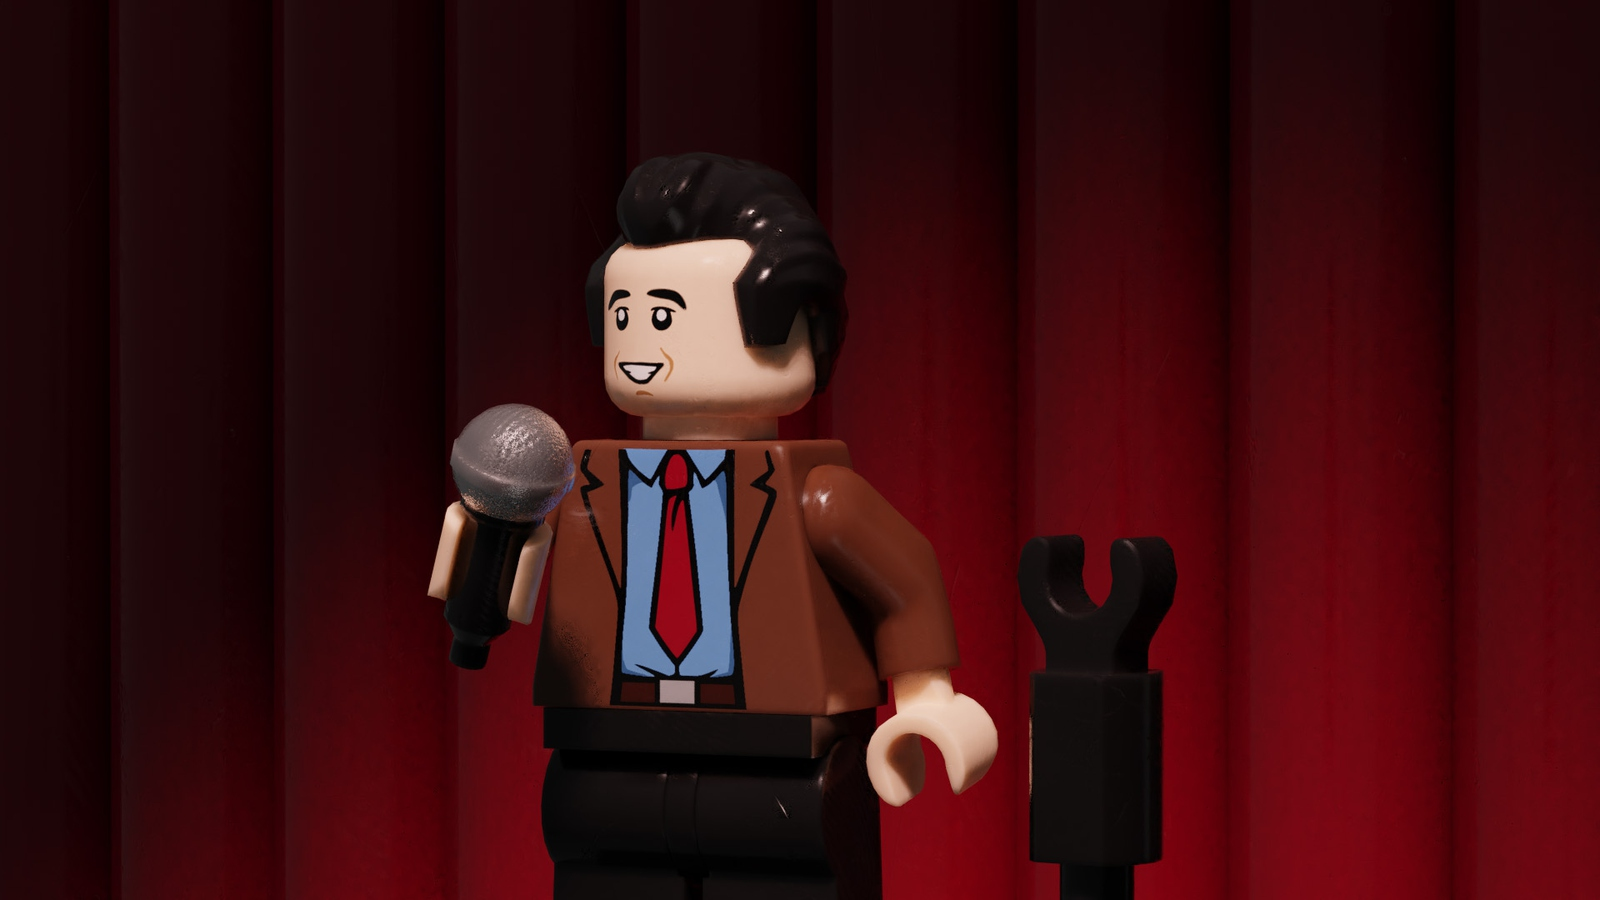 LEGO Jerry Seinfeld stand up